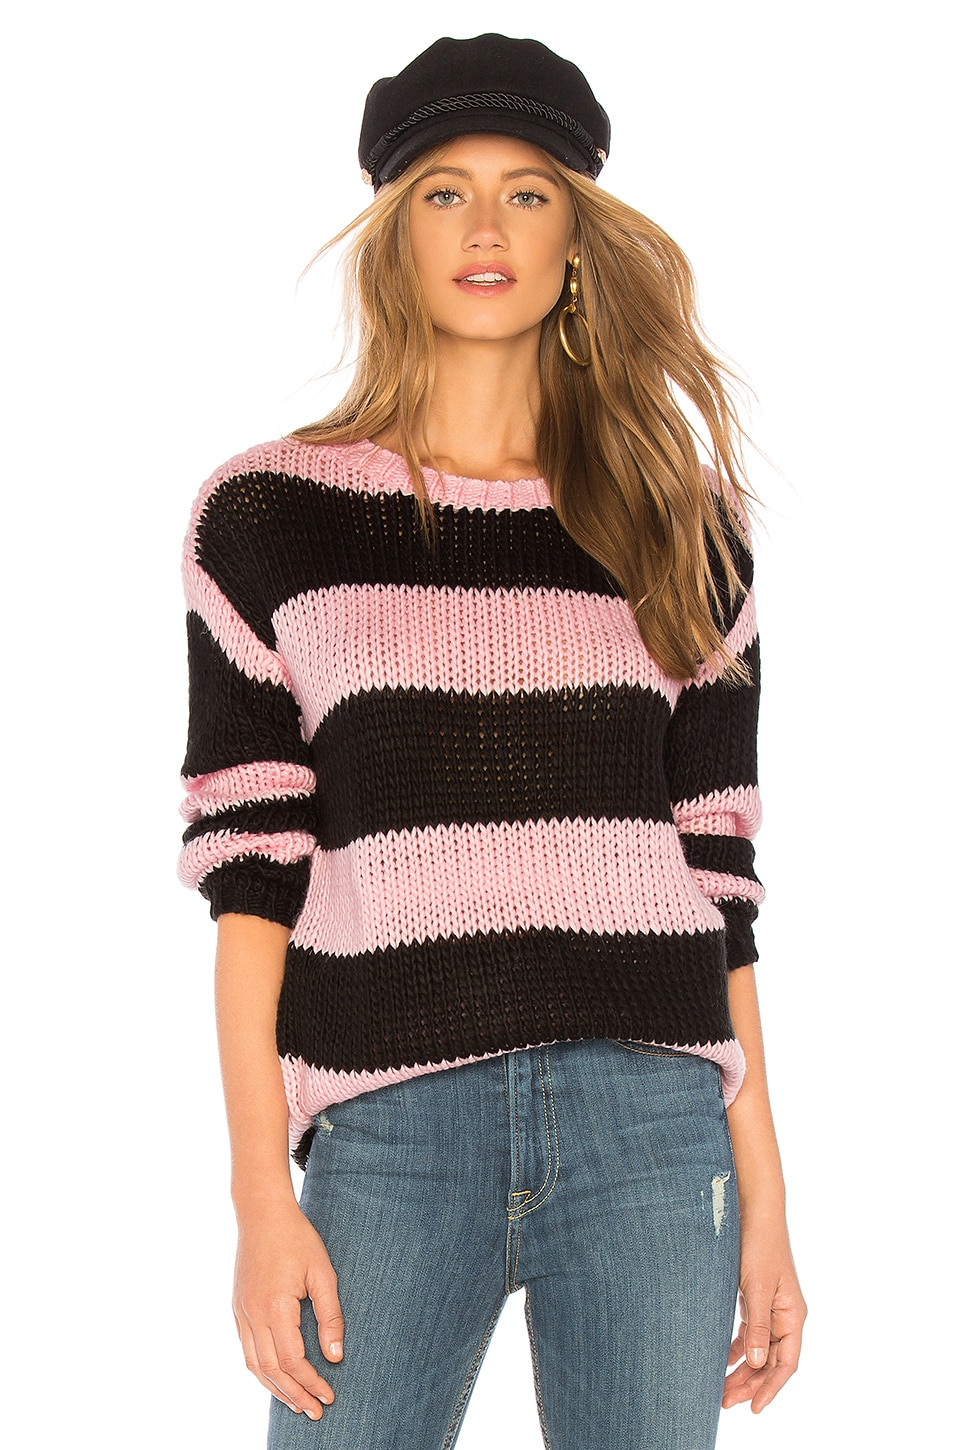 Lovers + Friends The Amber Sweater in Pink & Black Stripe